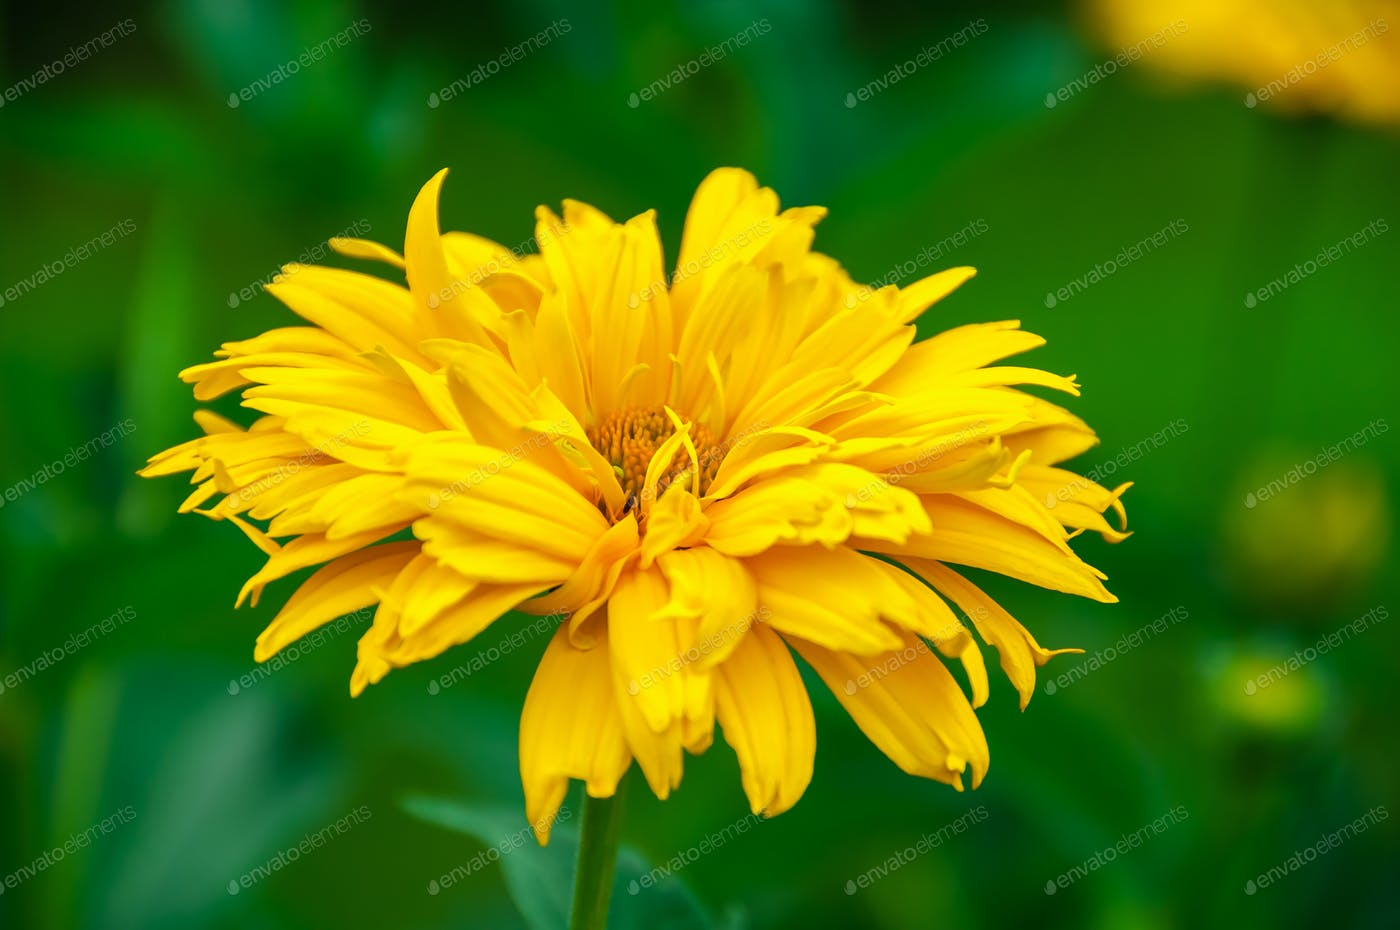 Yellow Flower On A Green Background Photo By Zeffss On Envato Elements